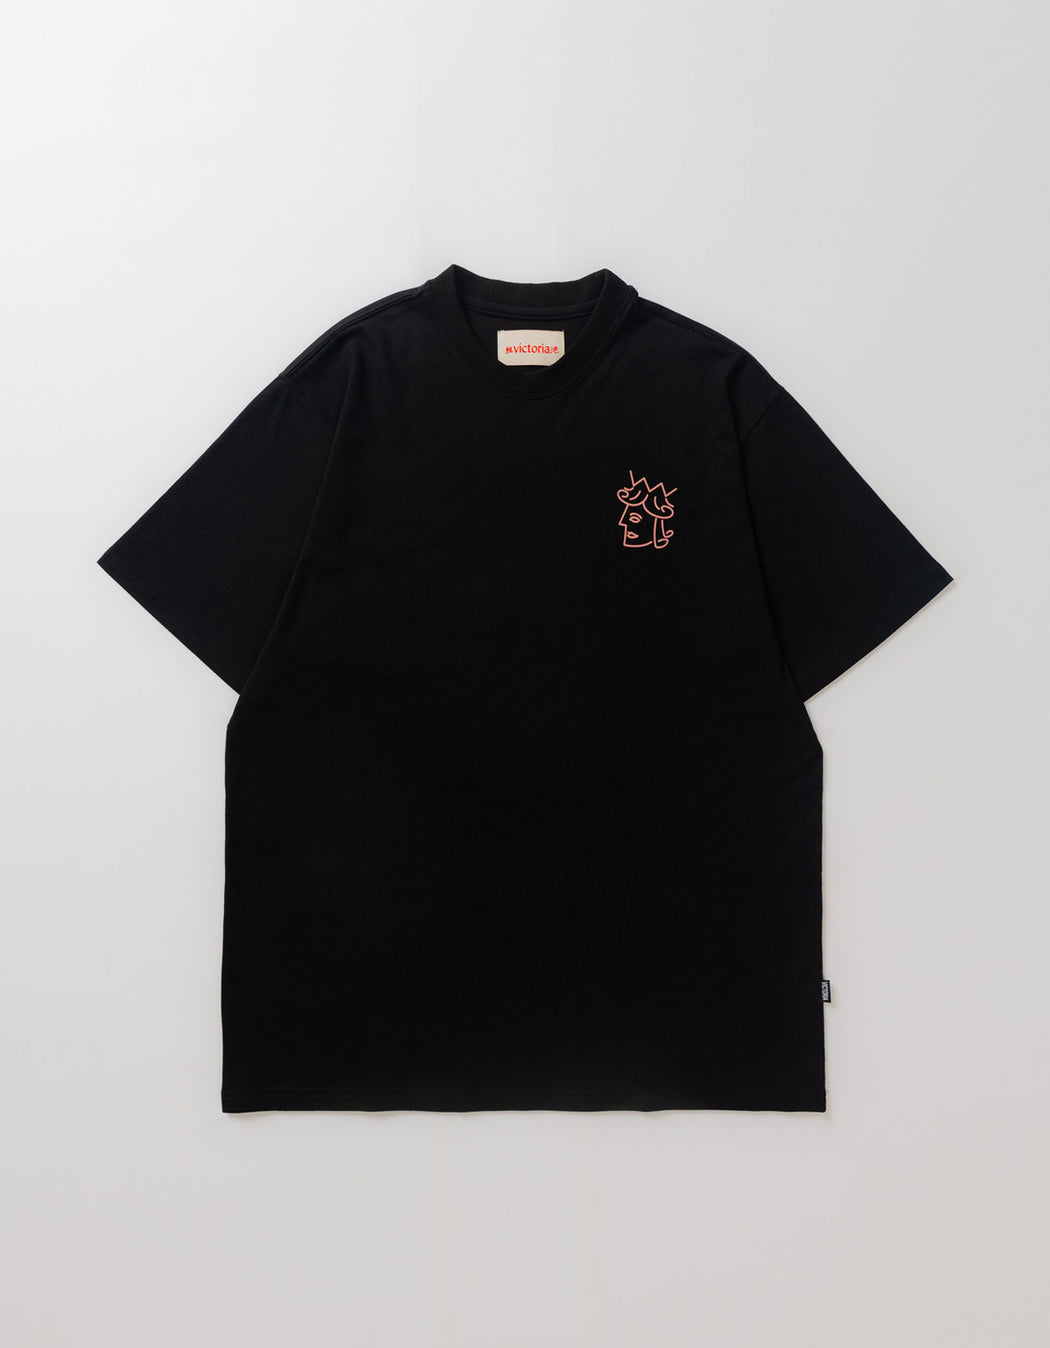 Victoria Queen Head Tee, Black